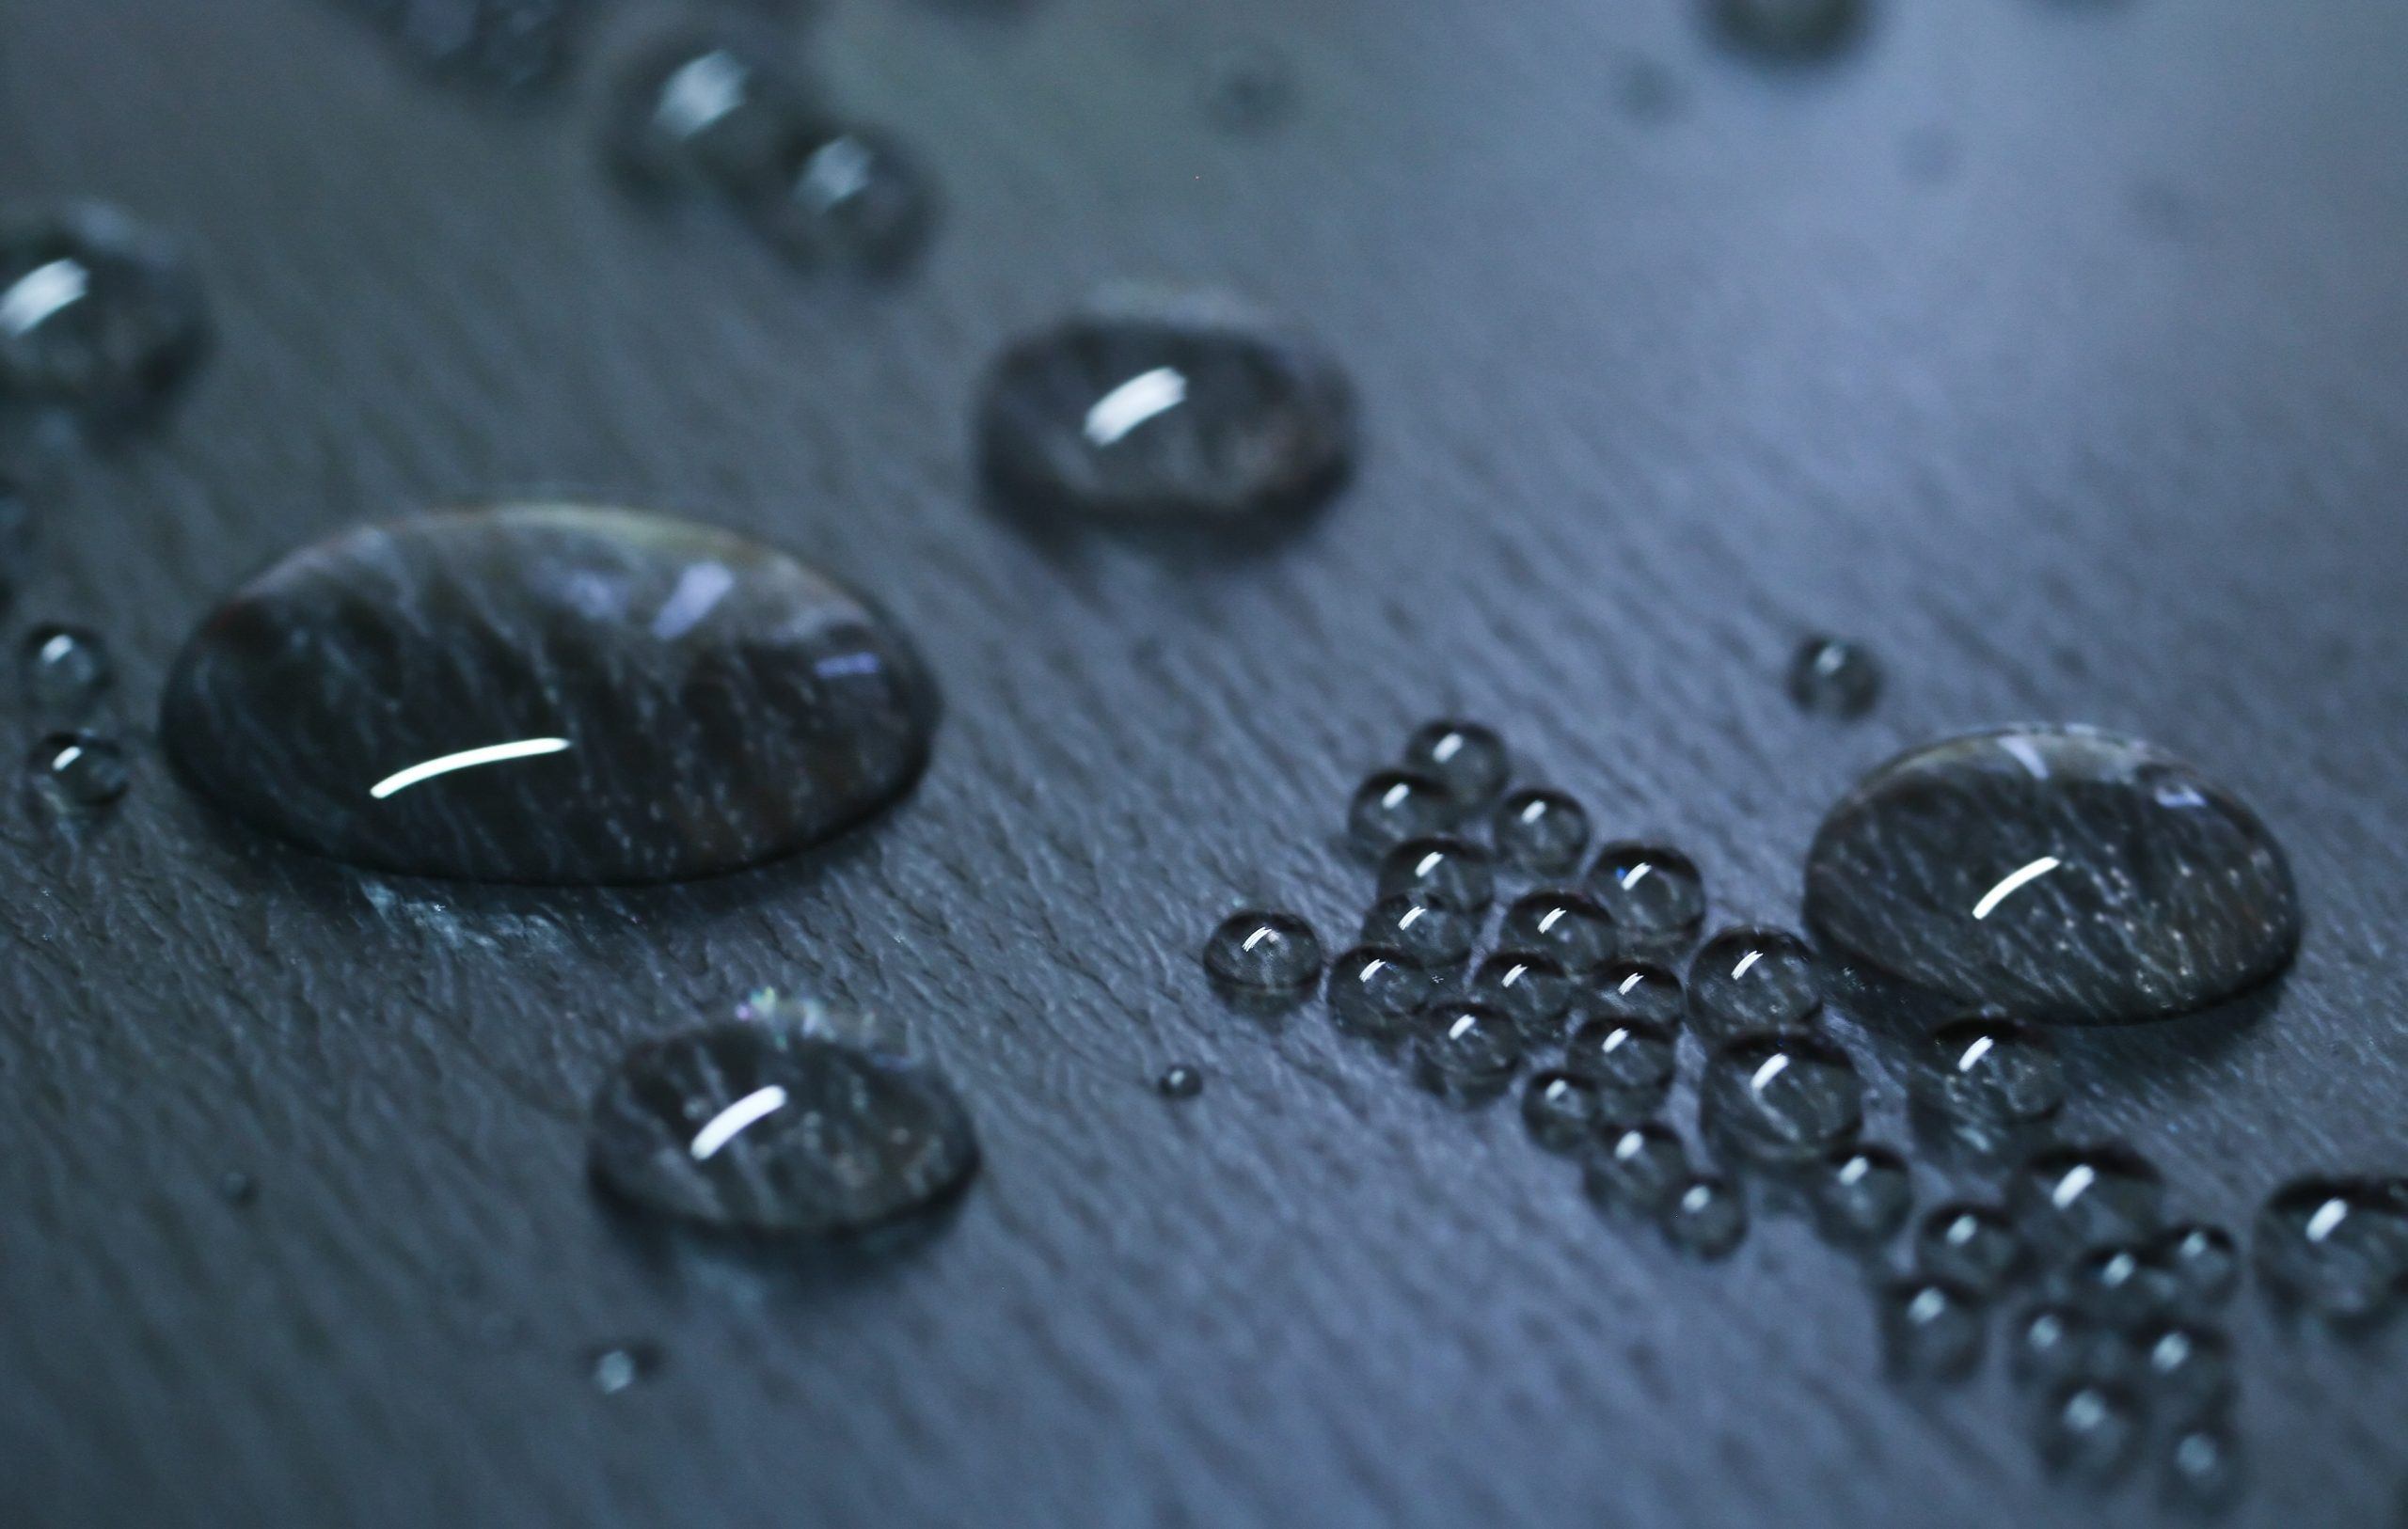 Water droplets beading on hydrophobic coated surface